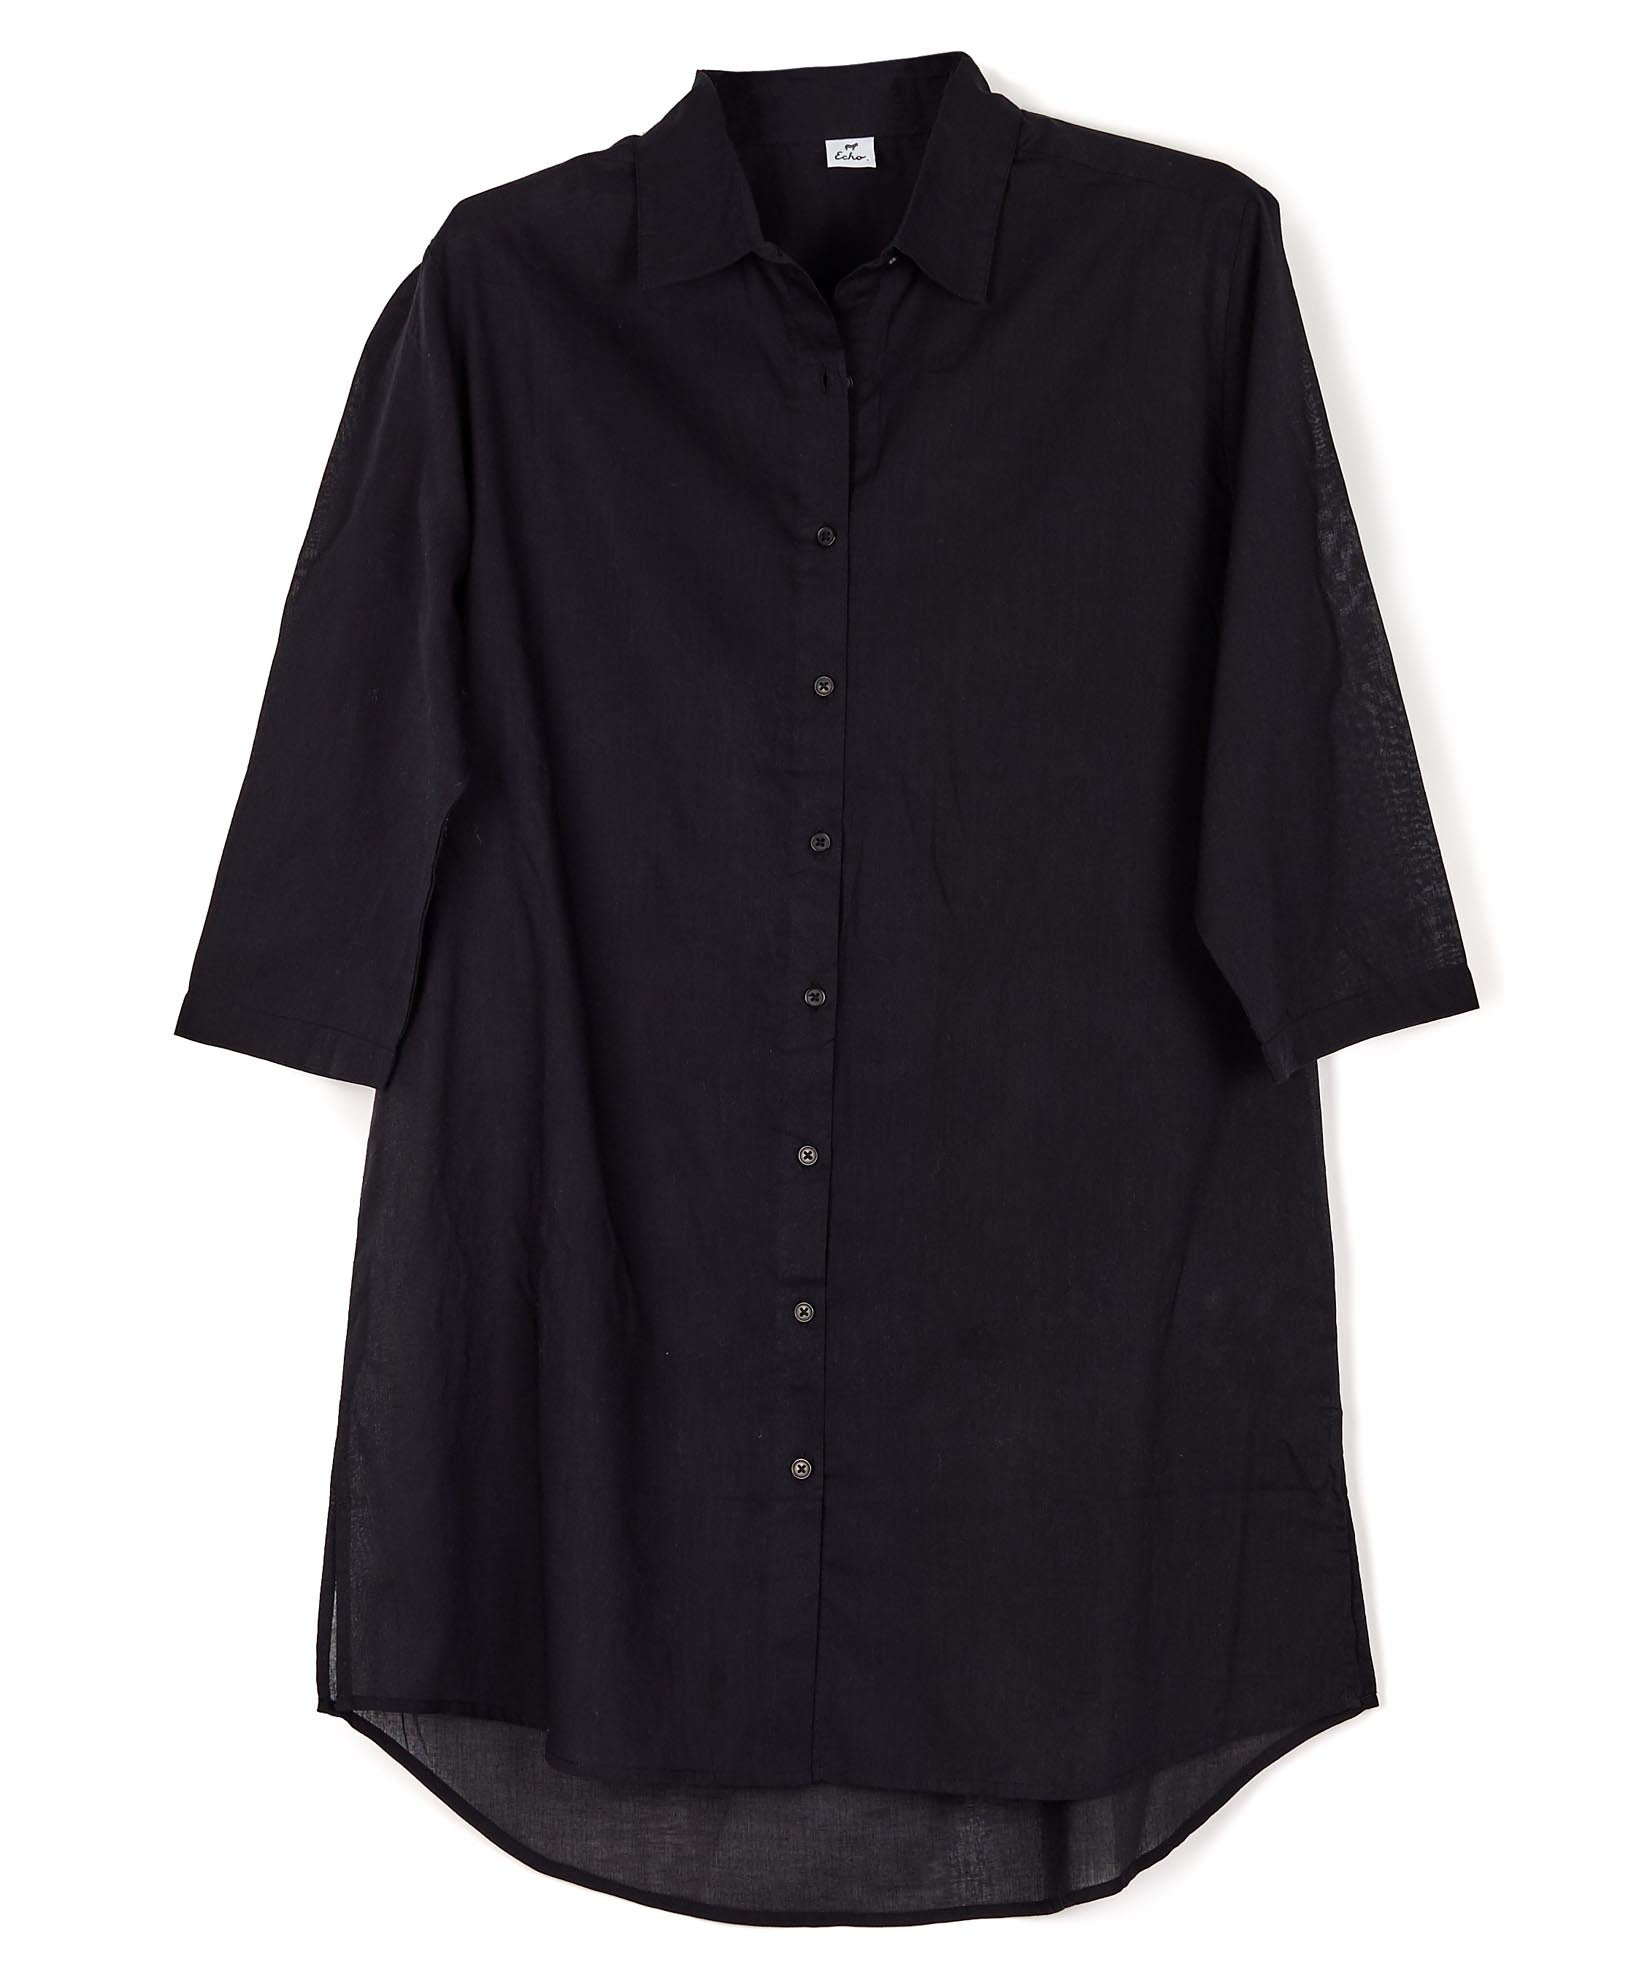 Black - Solid Button Down